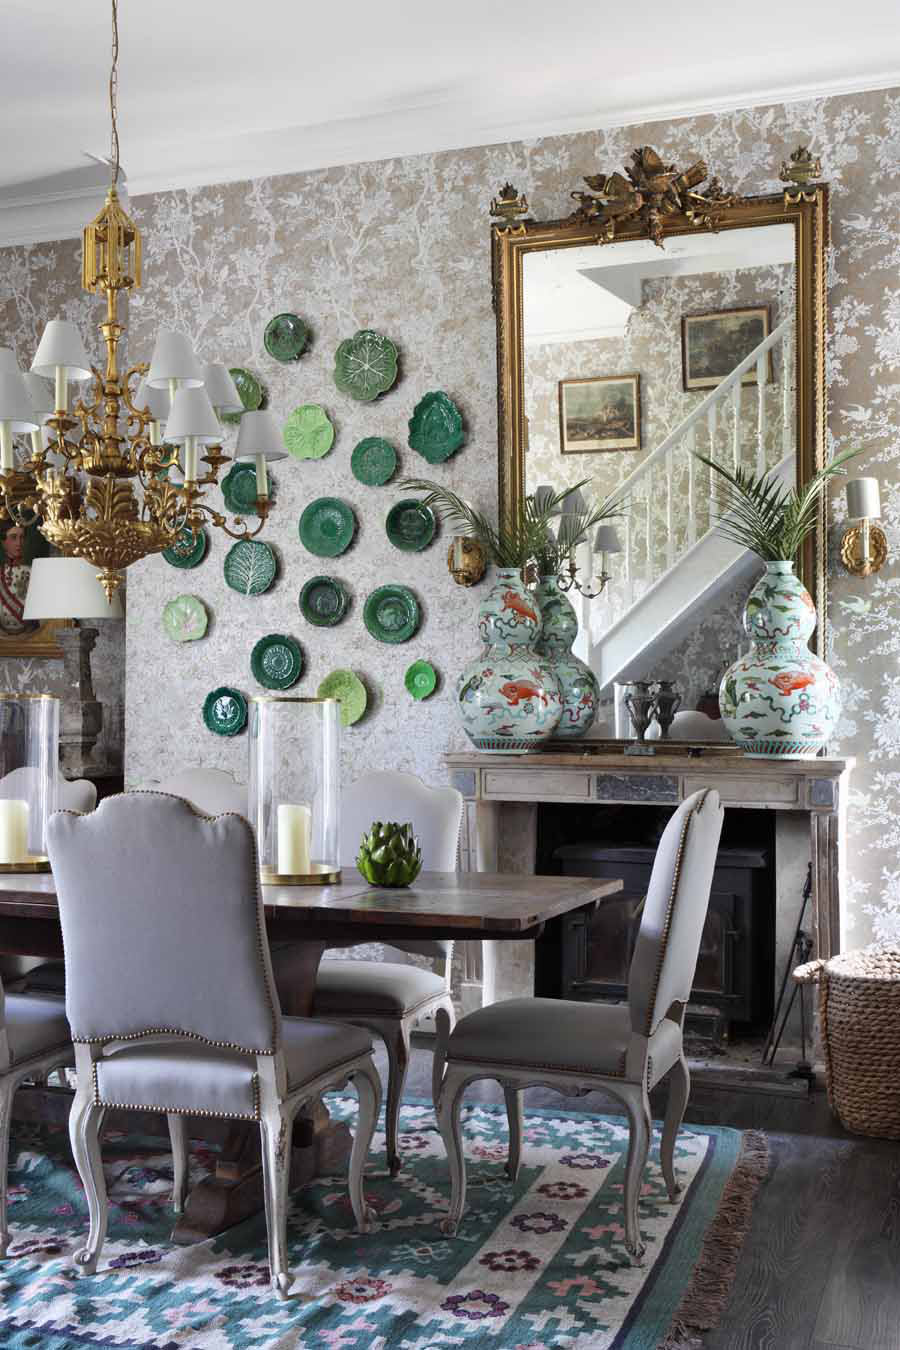 Traditional and classic dining room with antiques and Ralph Lauren wallpaper by VSP Interiors